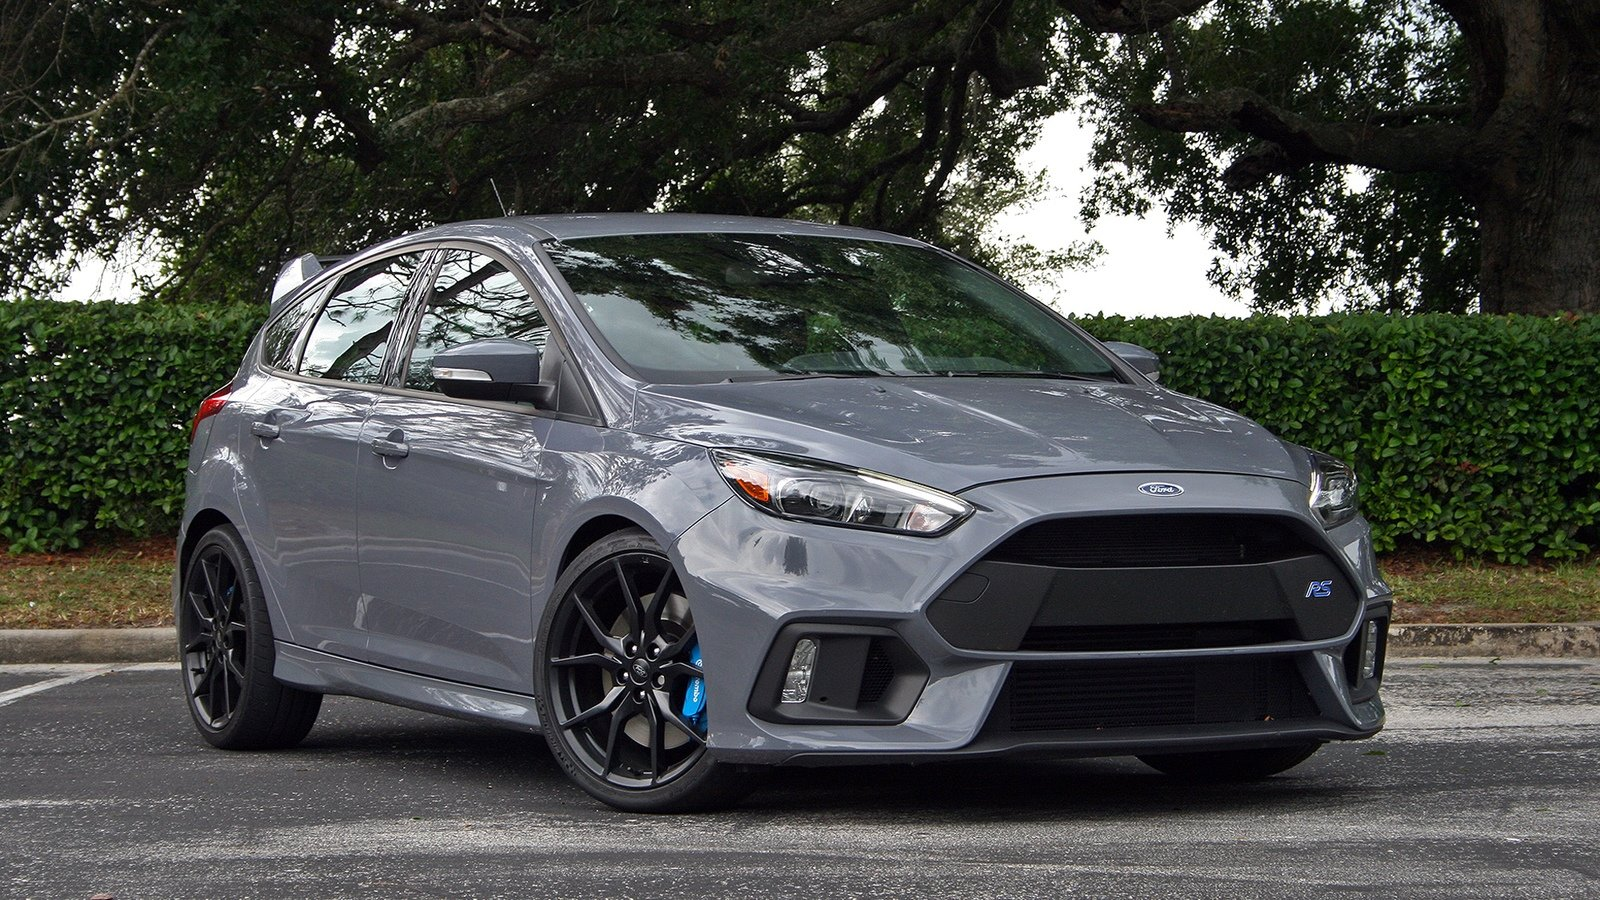 Ford Fayetteville Nc >> The 2017 Ford Focus RS rides like a horse cart and I LOVE IT!